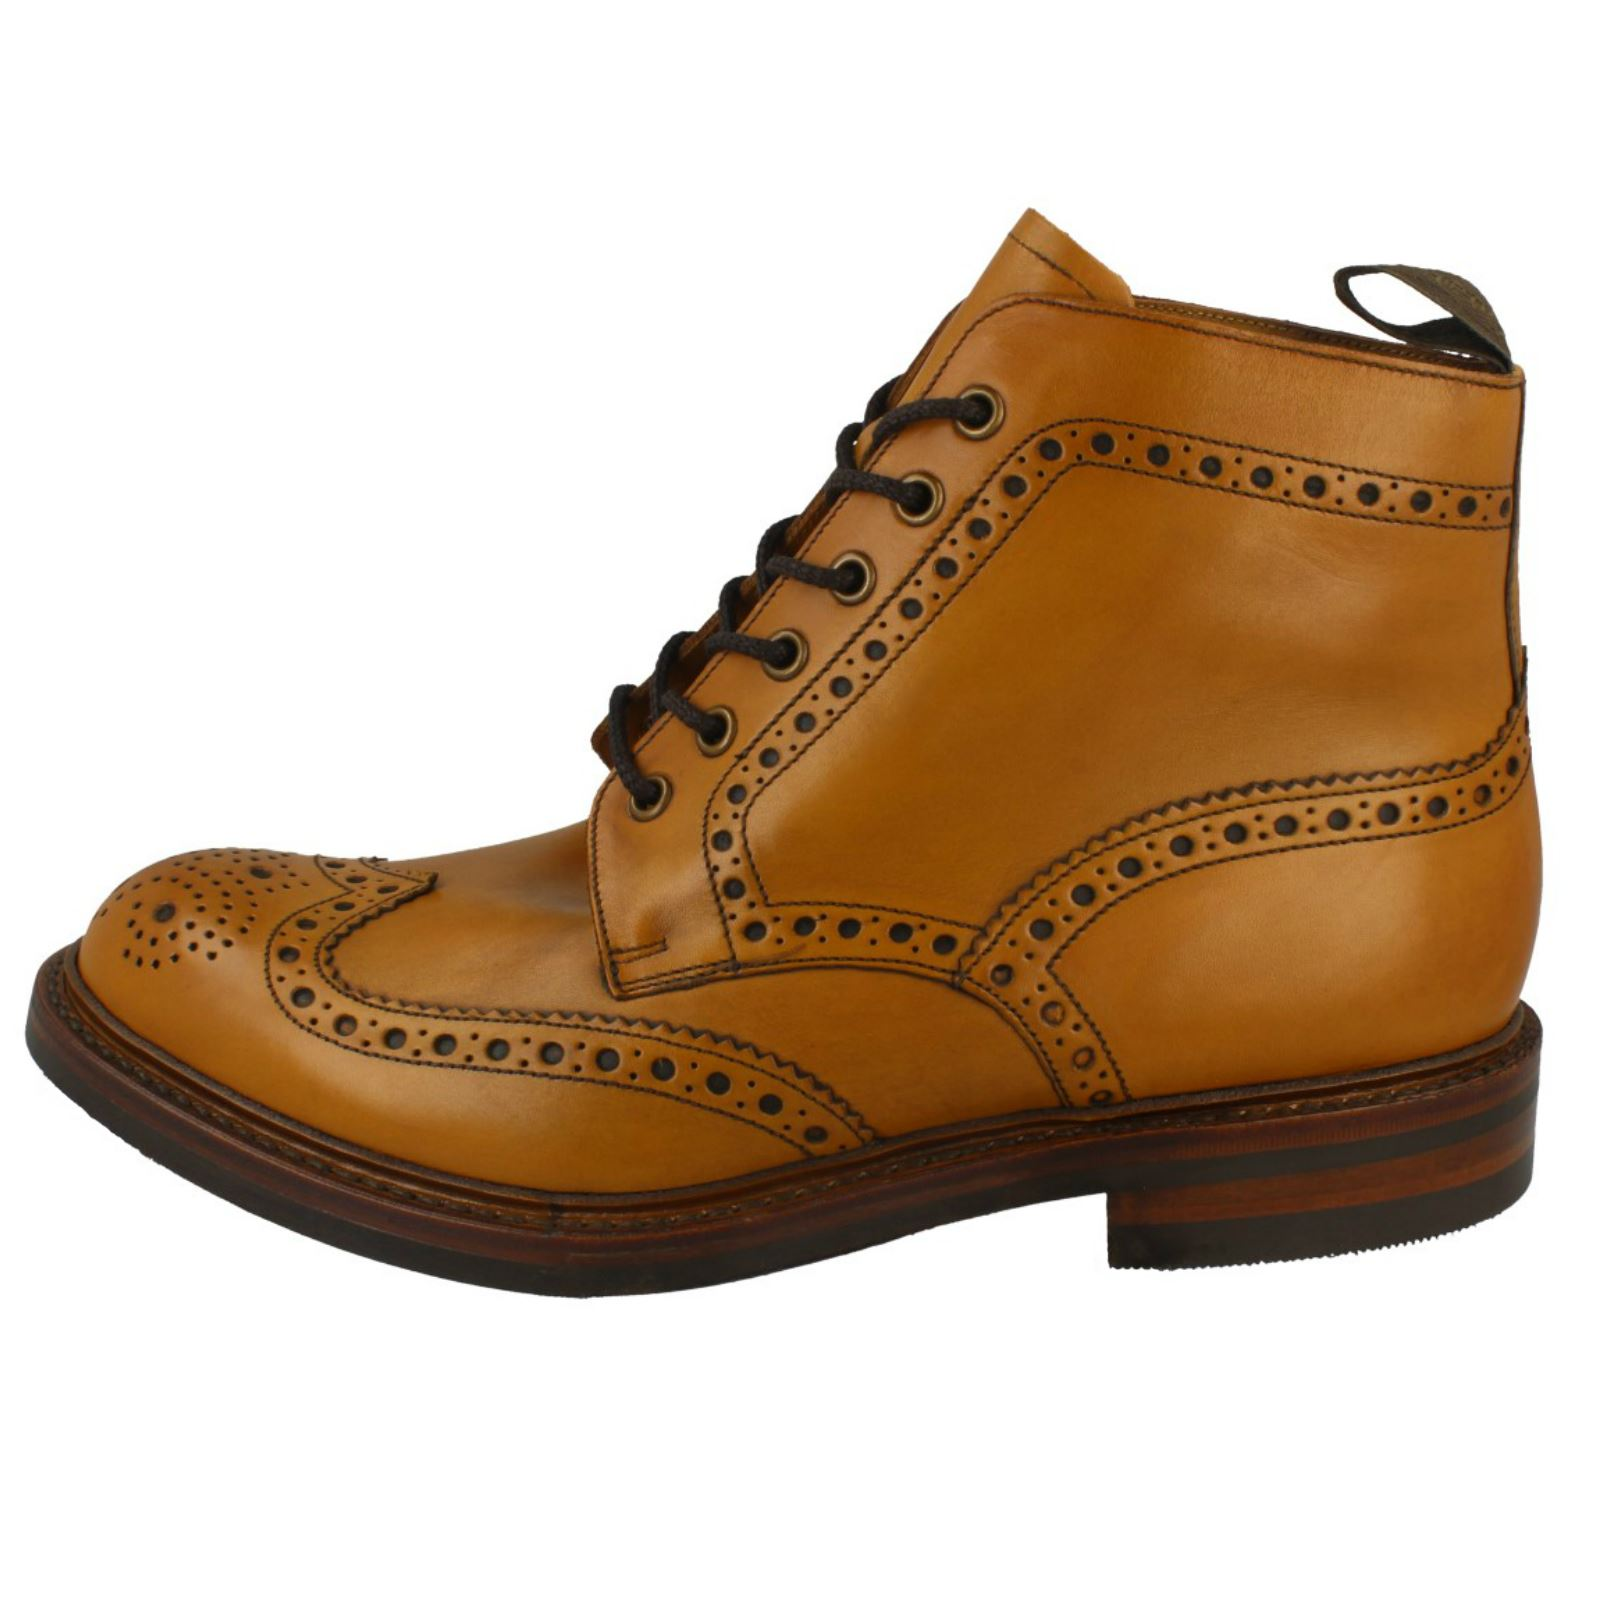 00735a09223d5 Loake-Mens-Brogue-Lace-Up-Boots-Bedale thumbnail 2